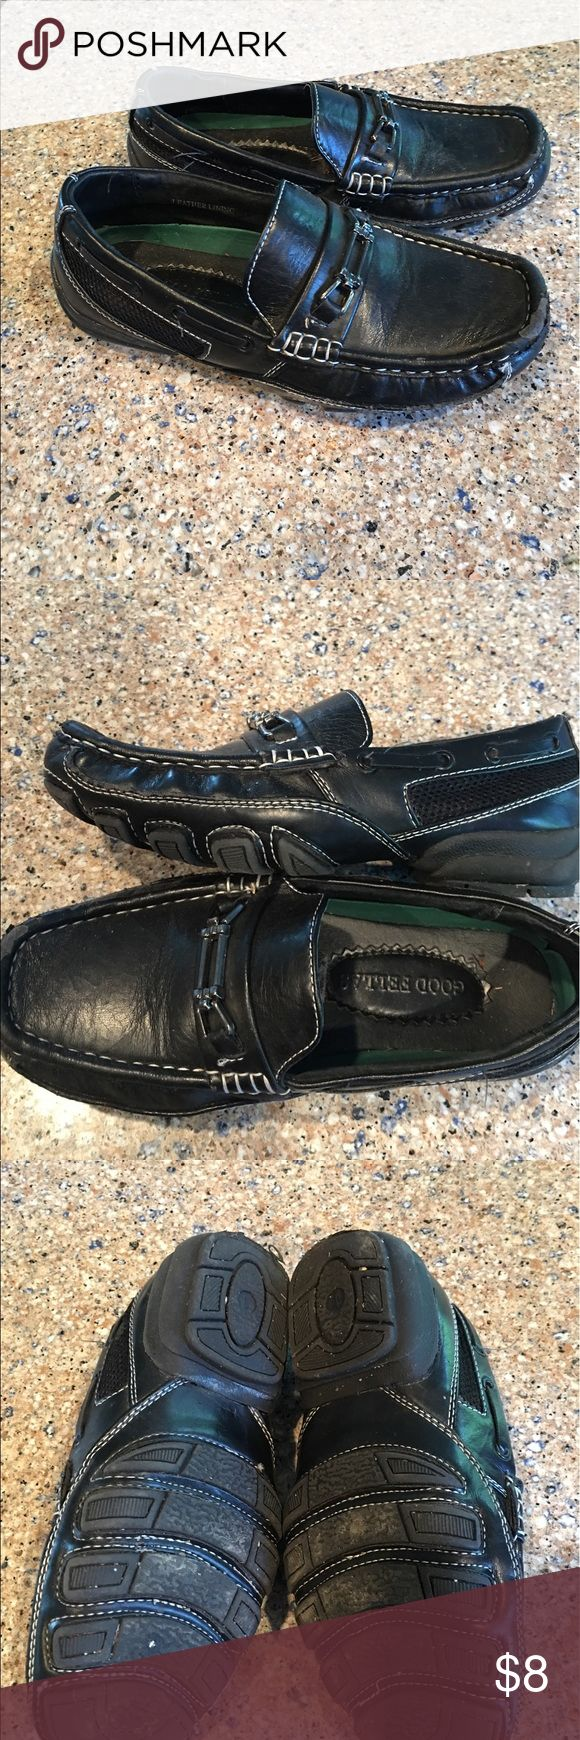 Boys Dress Shoes Goodfellas Size 1 Black Dress shoes in used condition. They have a spot on the toe that is damaged but other than that they are in Great used condition. These are so comfortable! Shoes Dress Shoes